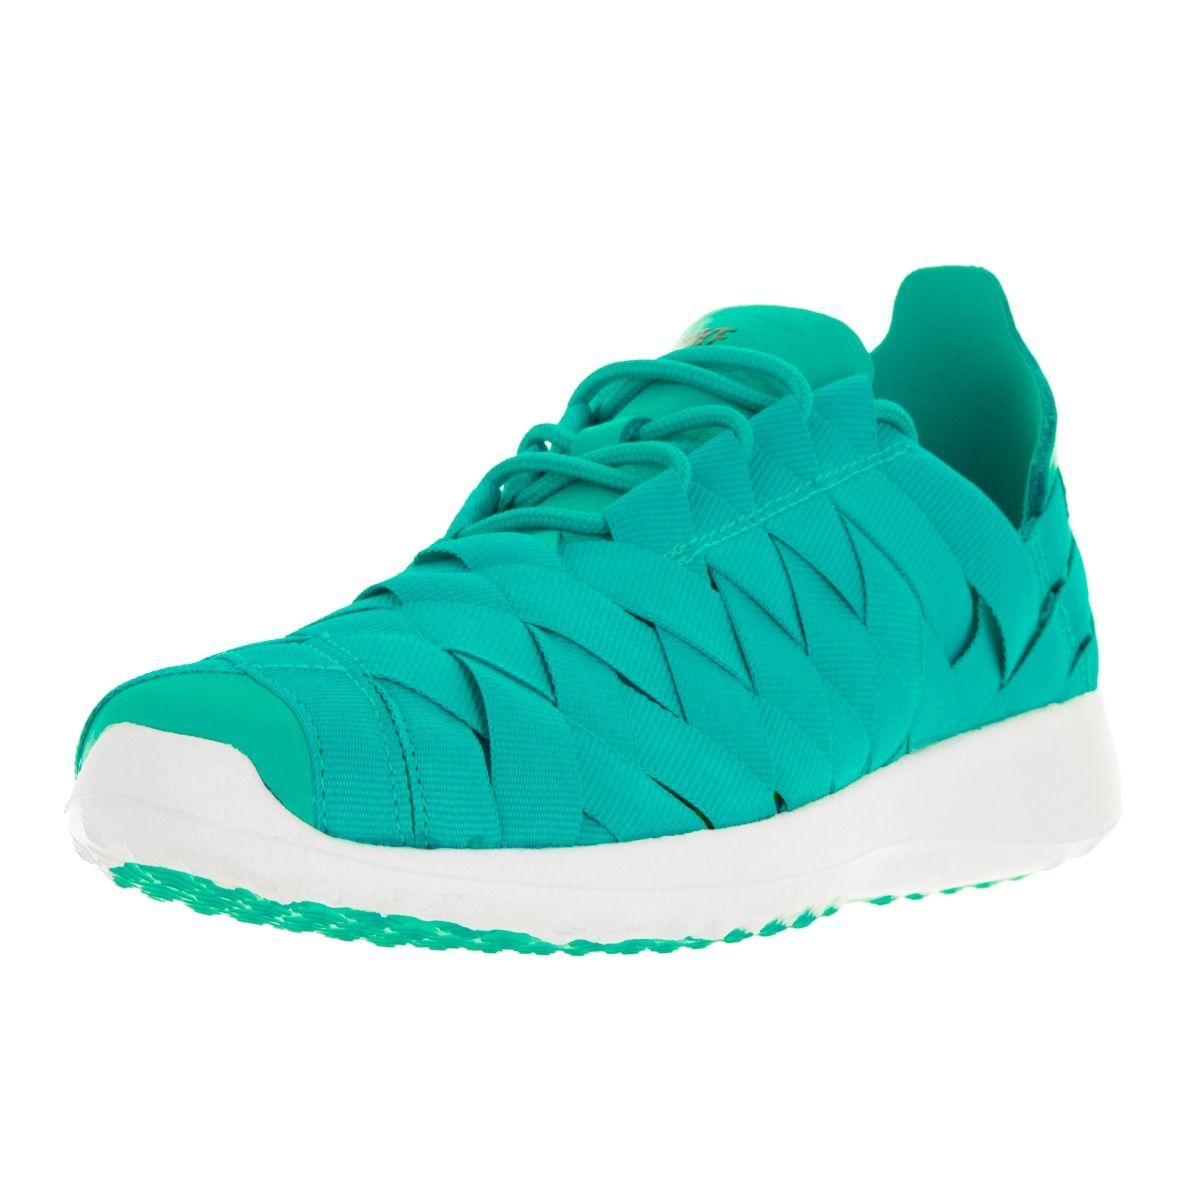 Nike Women's Juvenate Woven Clear Jade/Black/White Casual Shoe